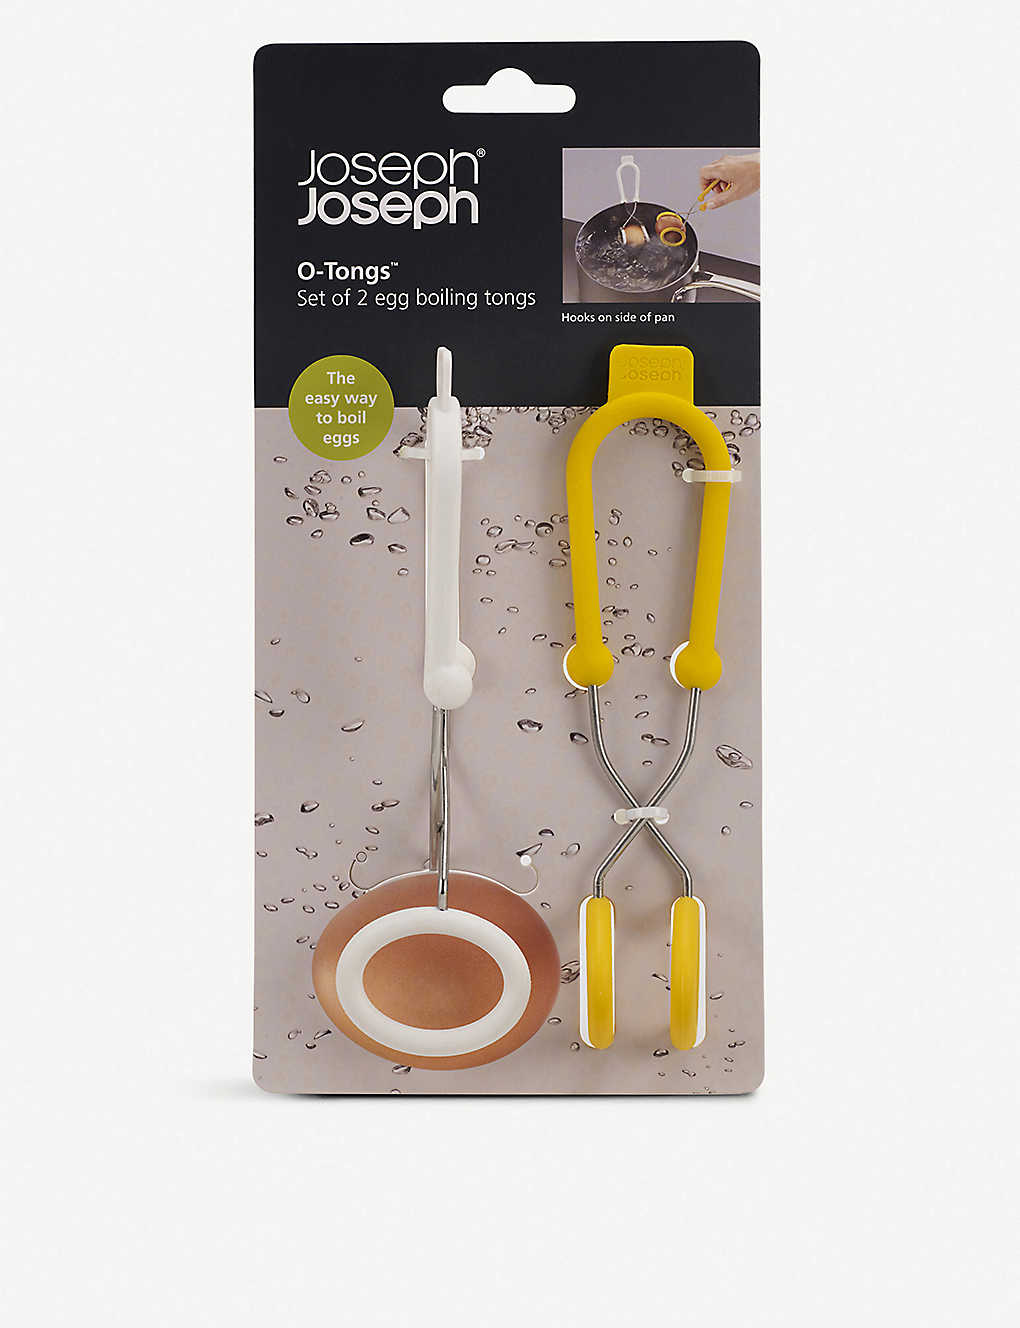 JOSEPH JOSEPH: Boiled Egg O-Tongs, set of two